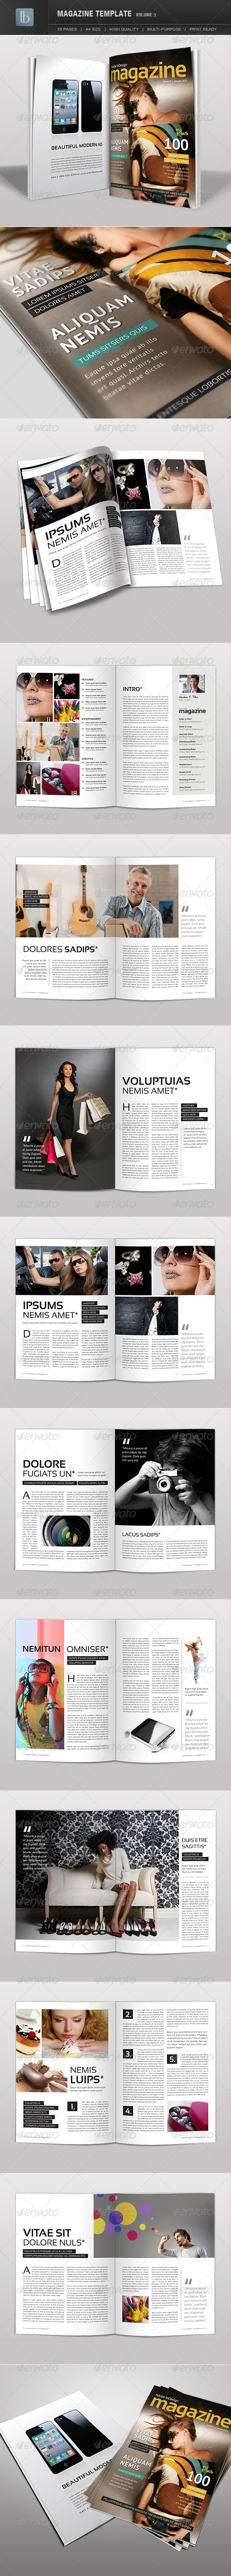 Magazine Template | Volume 3 - Magazines Print Templates